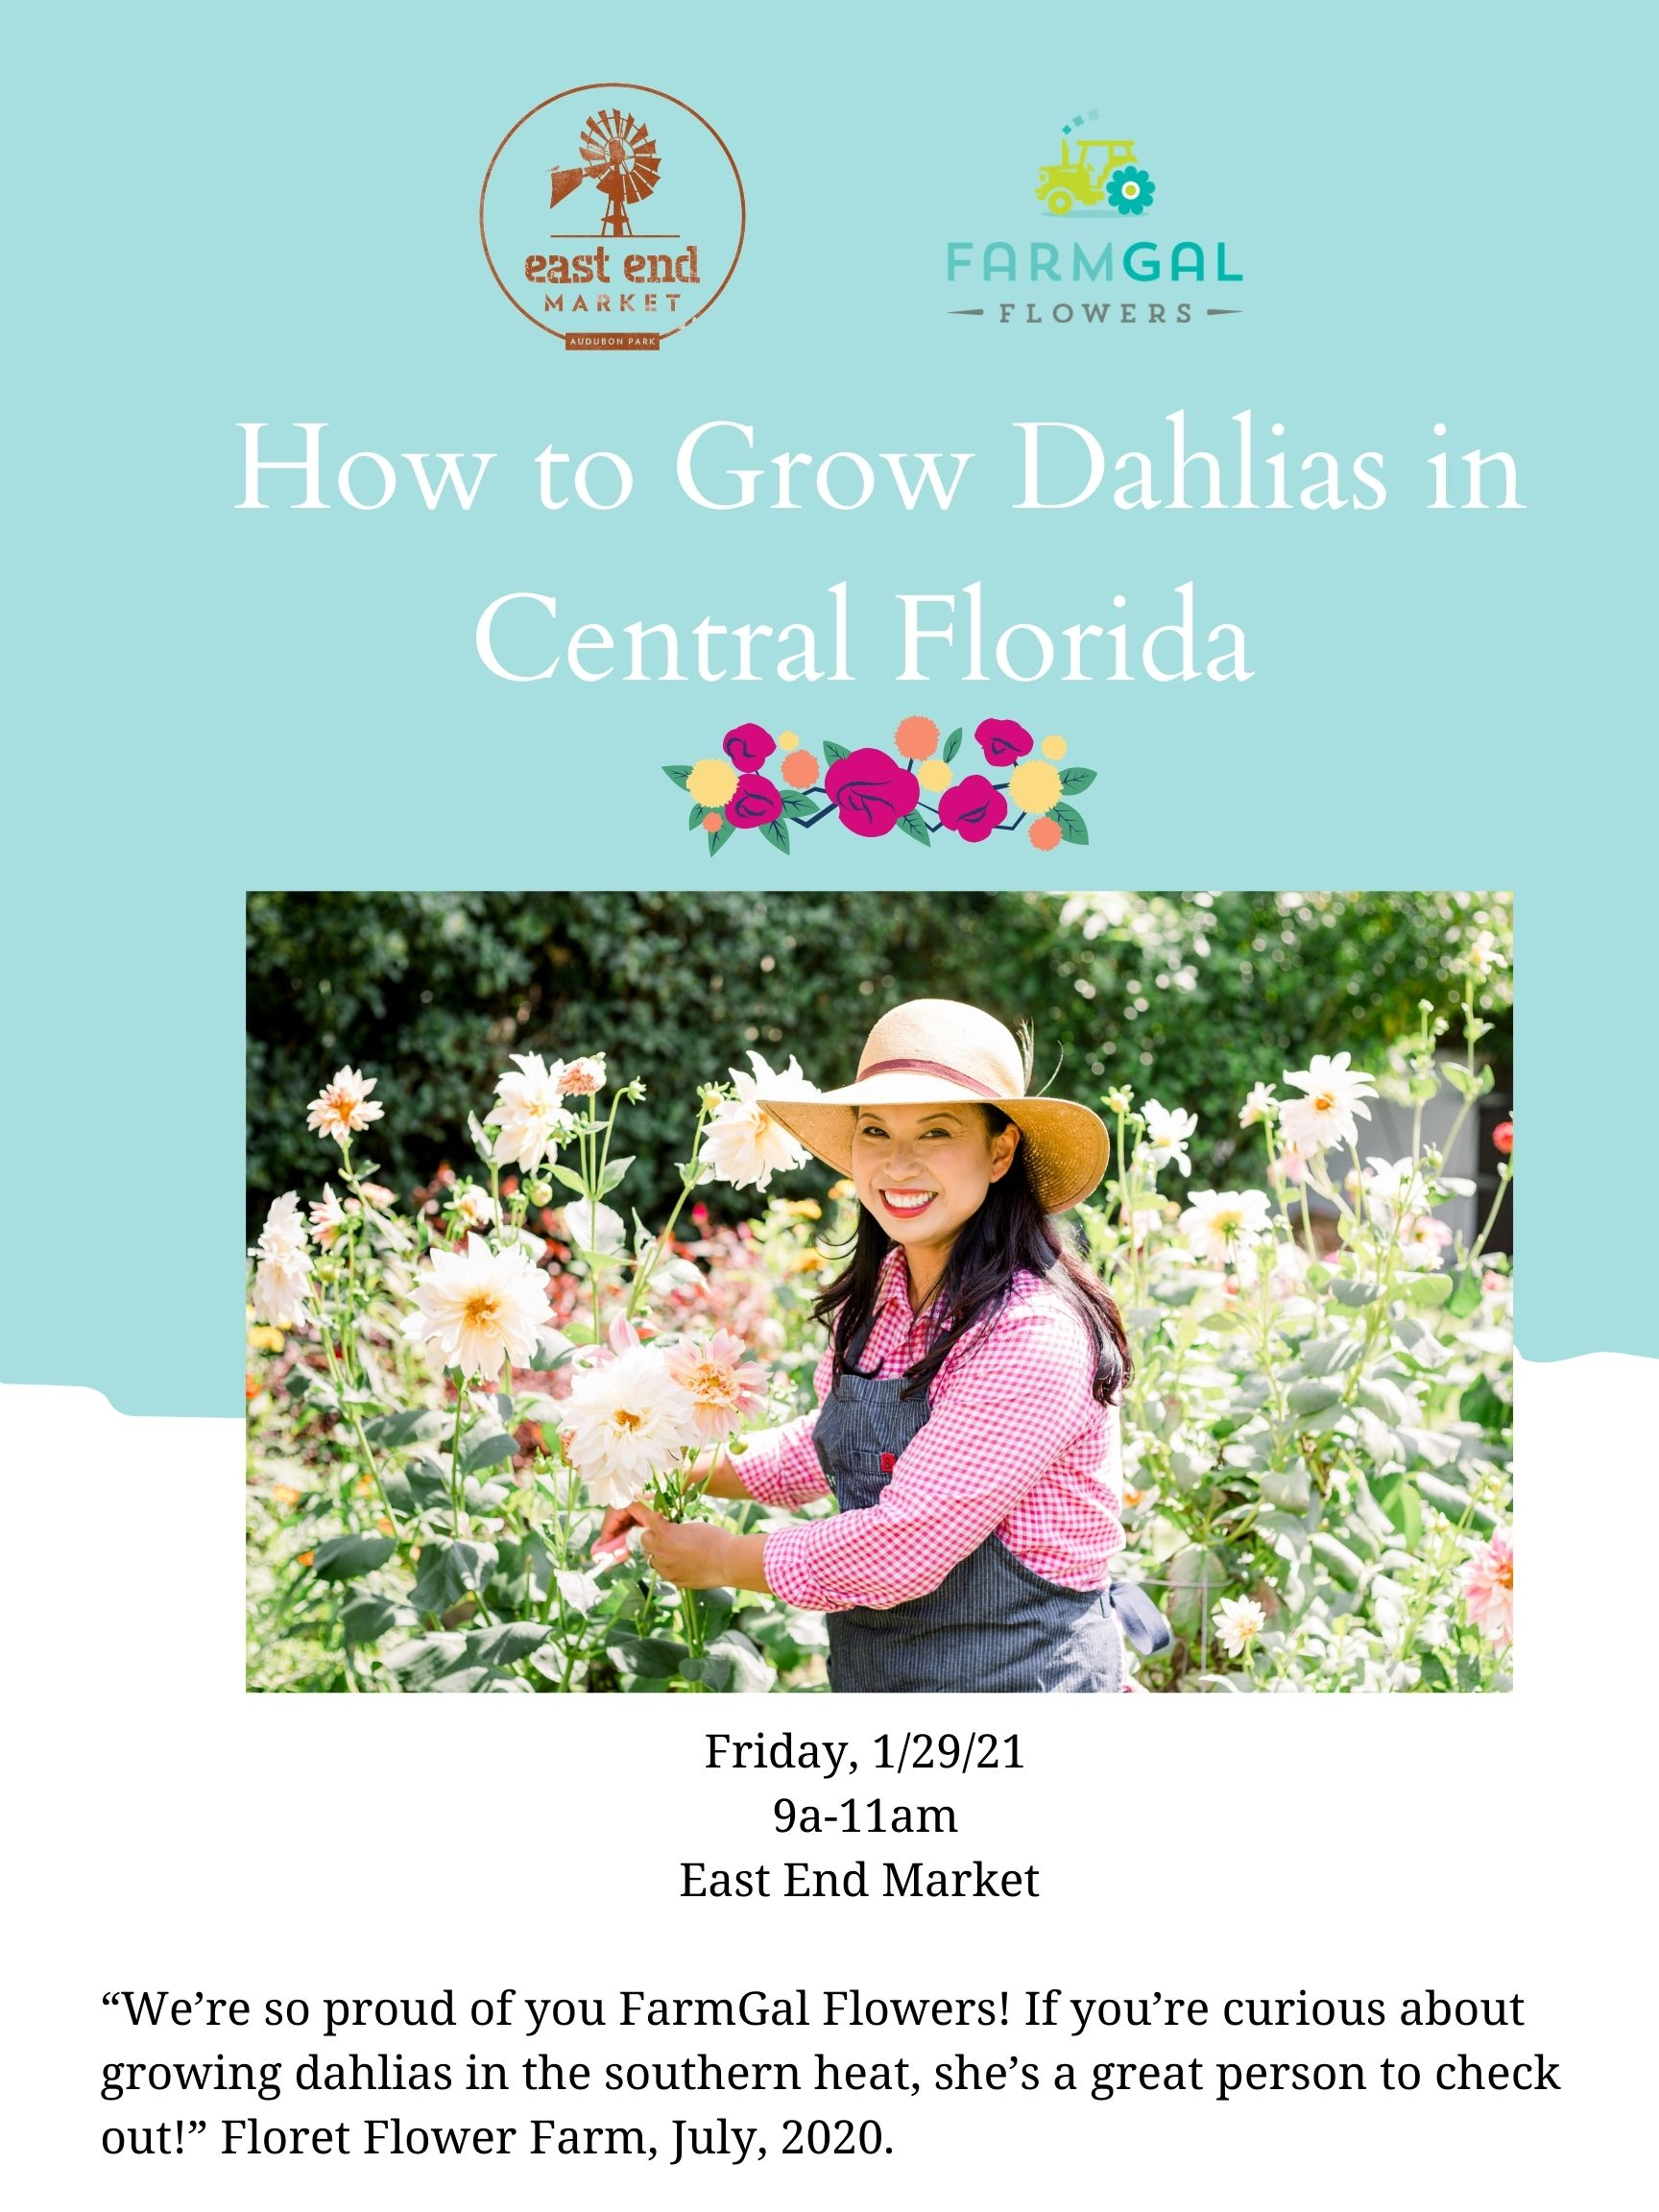 How to Grow Dahlias in Central Florida